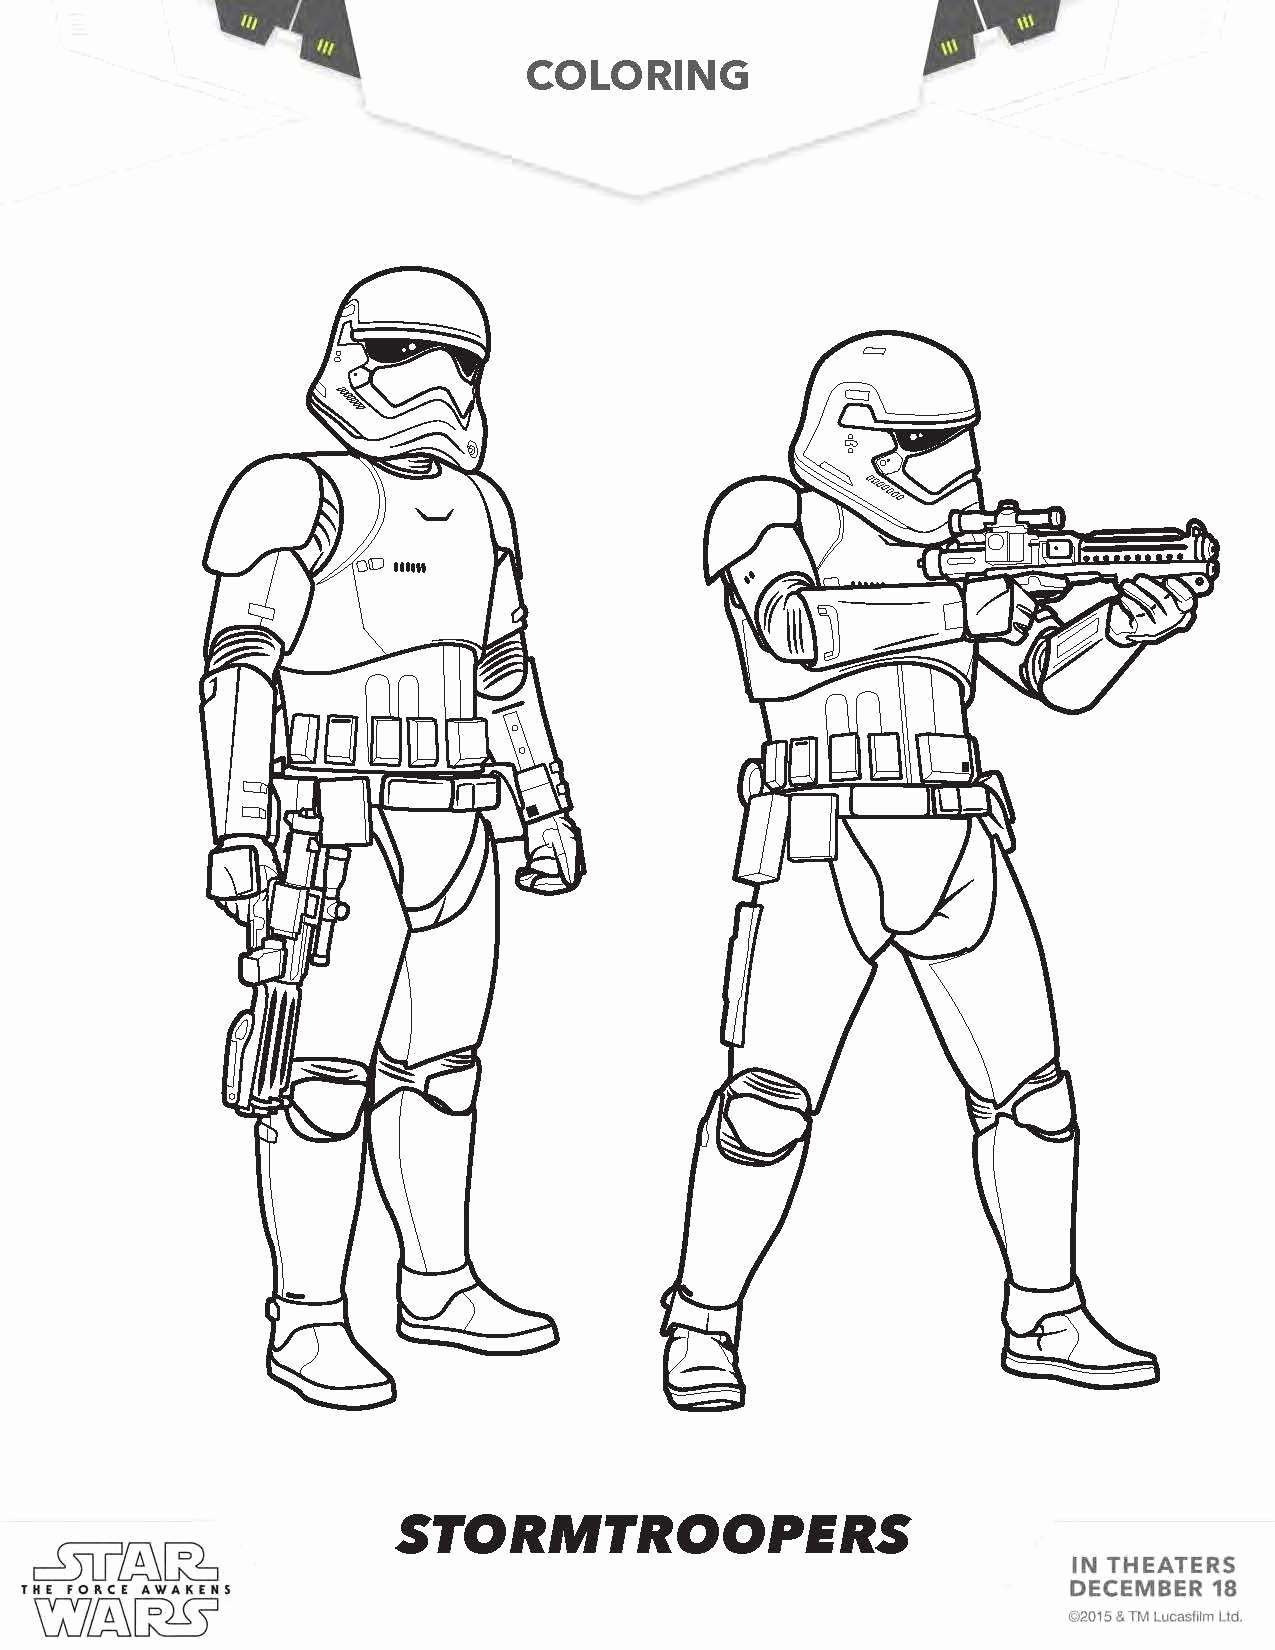 Star Wars Ausmalbilder Darth Vader Inspirierend Coloring Pages for Boys Star Wars Free Star Wars Malvorlagen Das Neu Stock